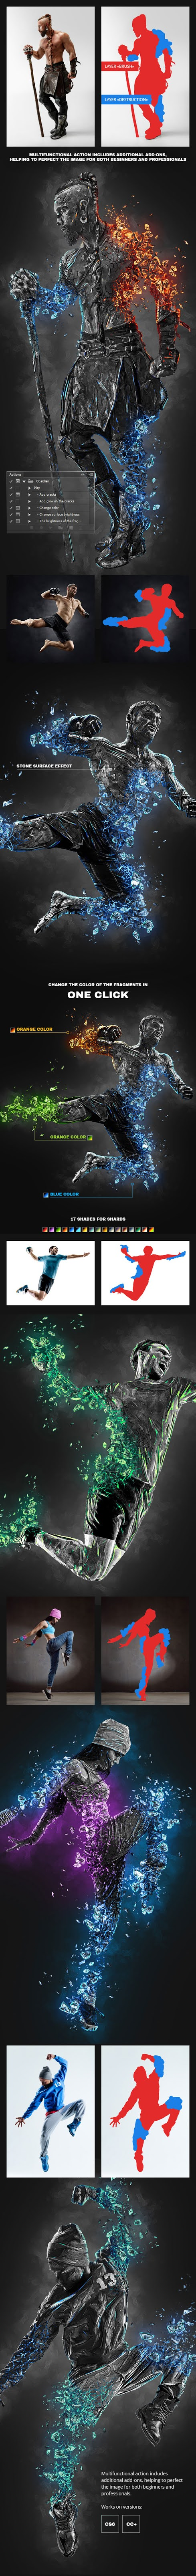 GraphicRiver Obsidian Photoshop Action 26998428 Download